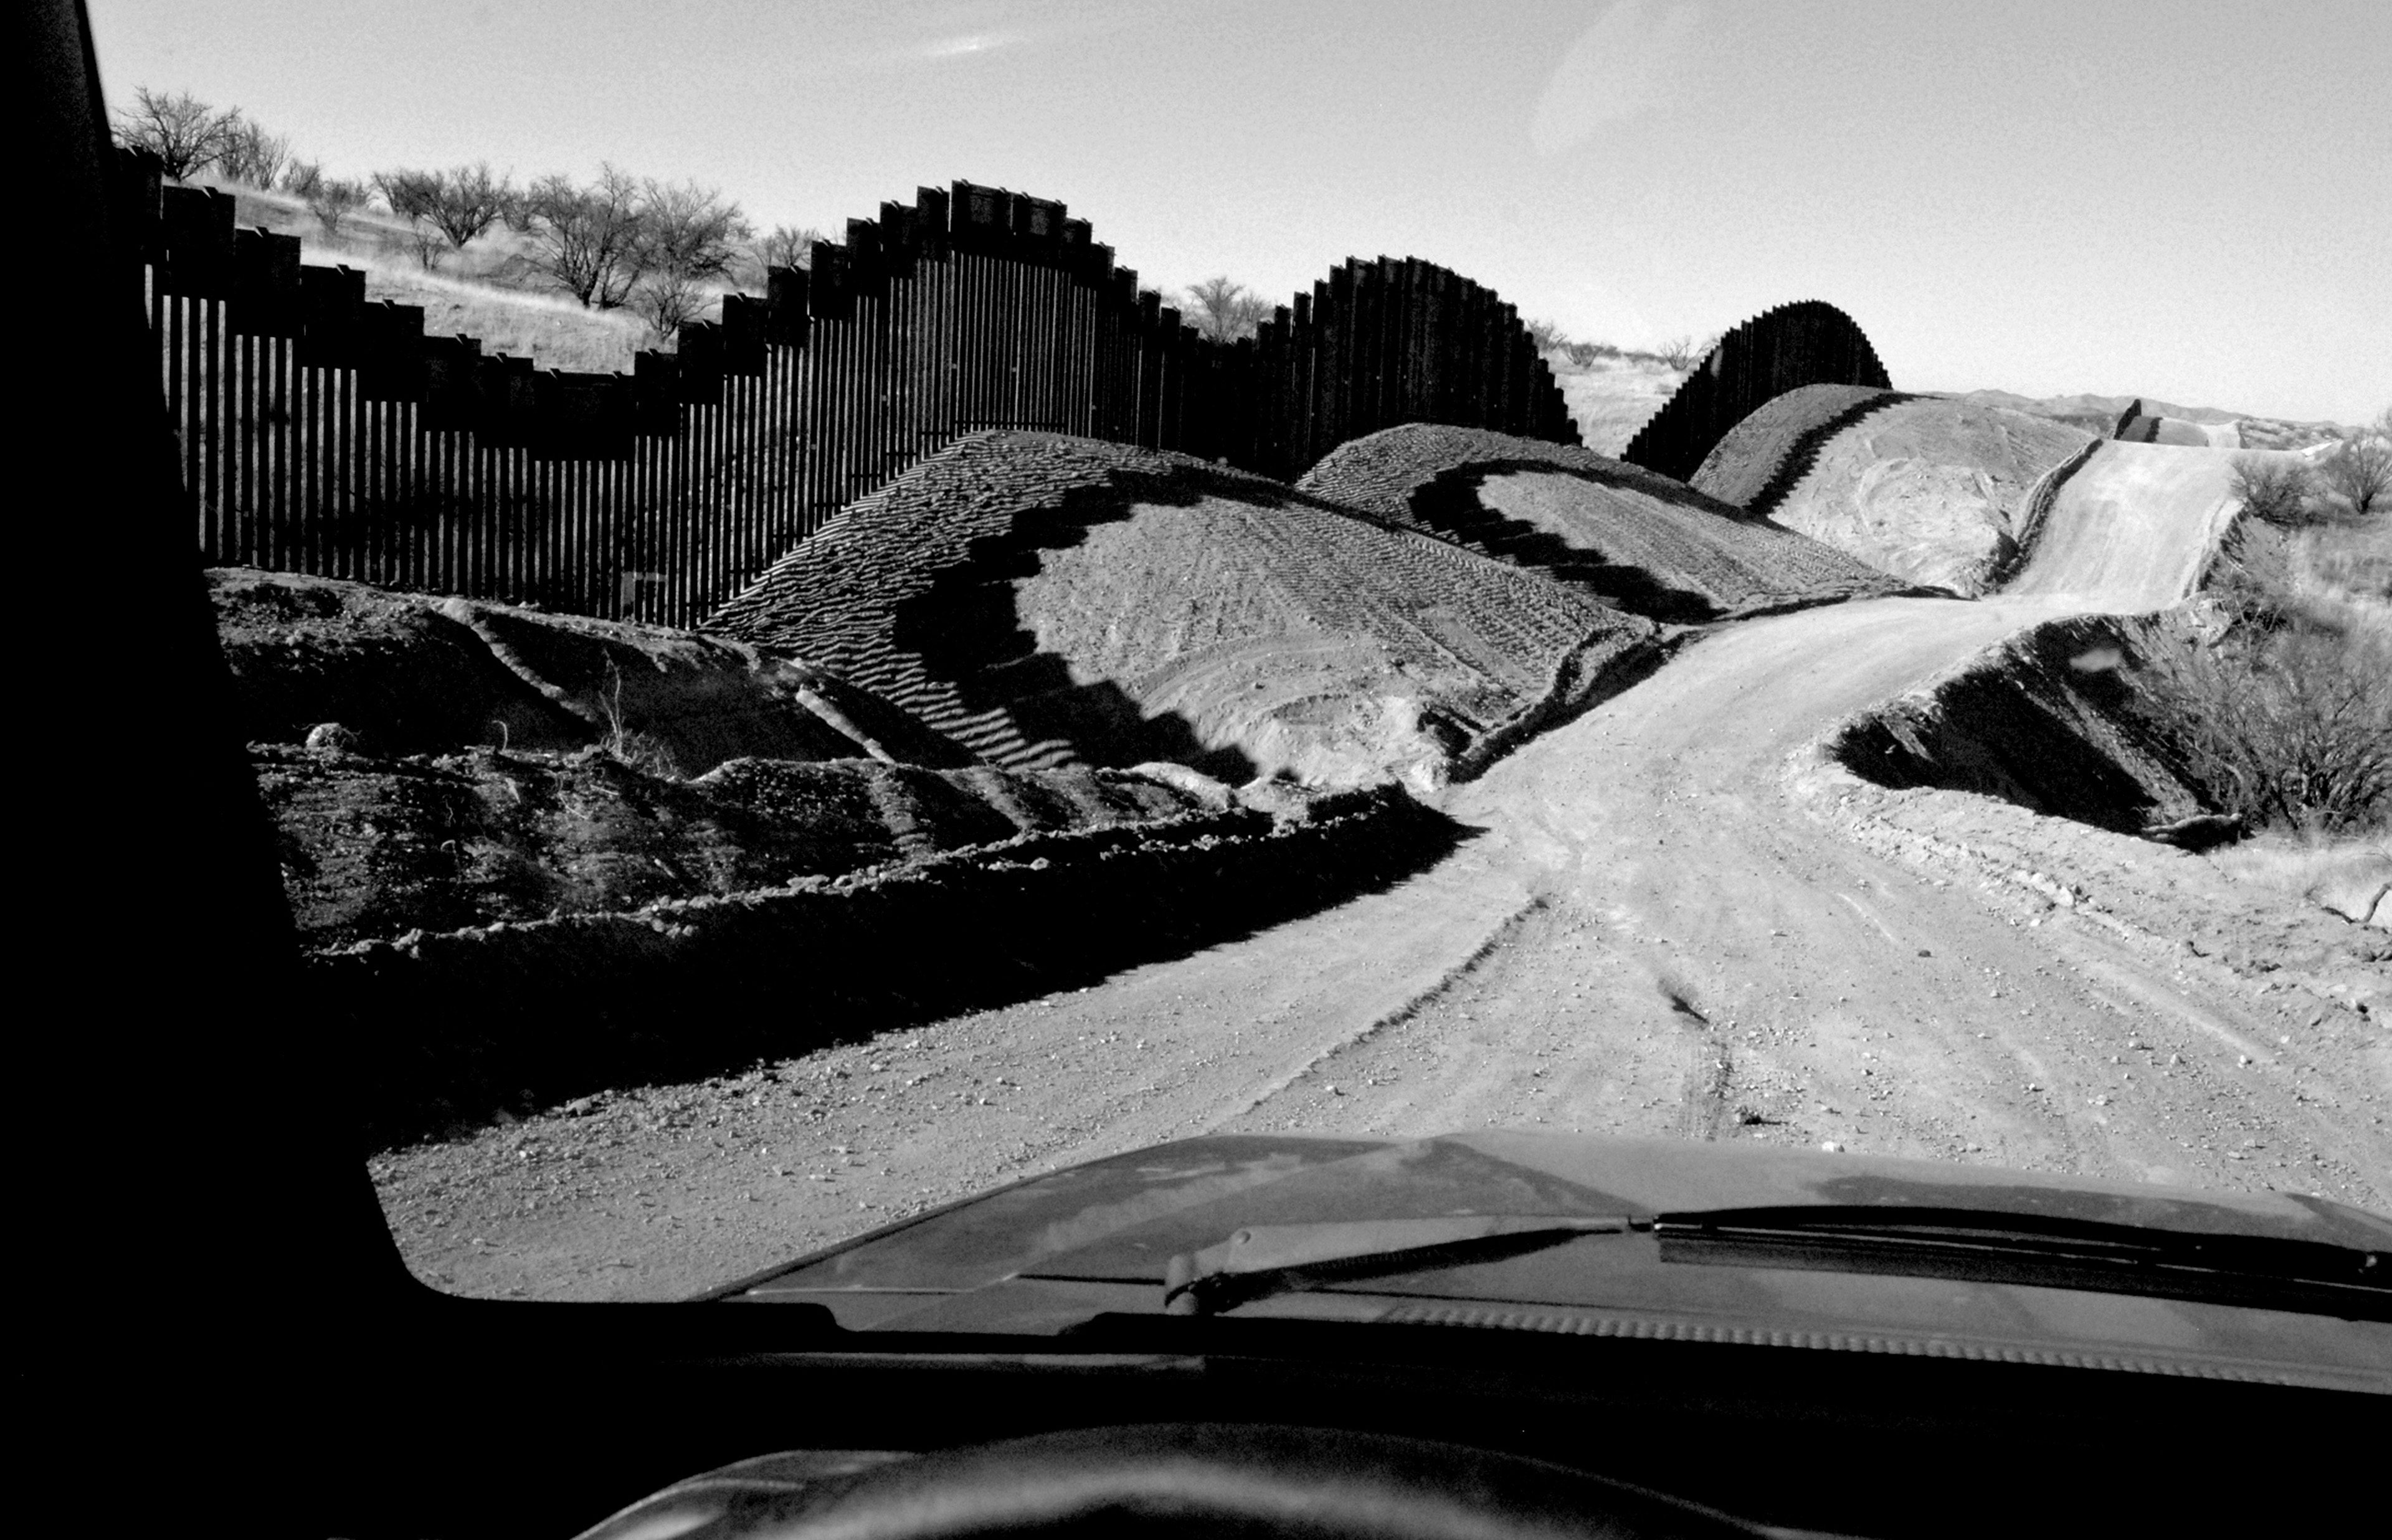 A dirt road with an undulating fence seen from the windshield of a car